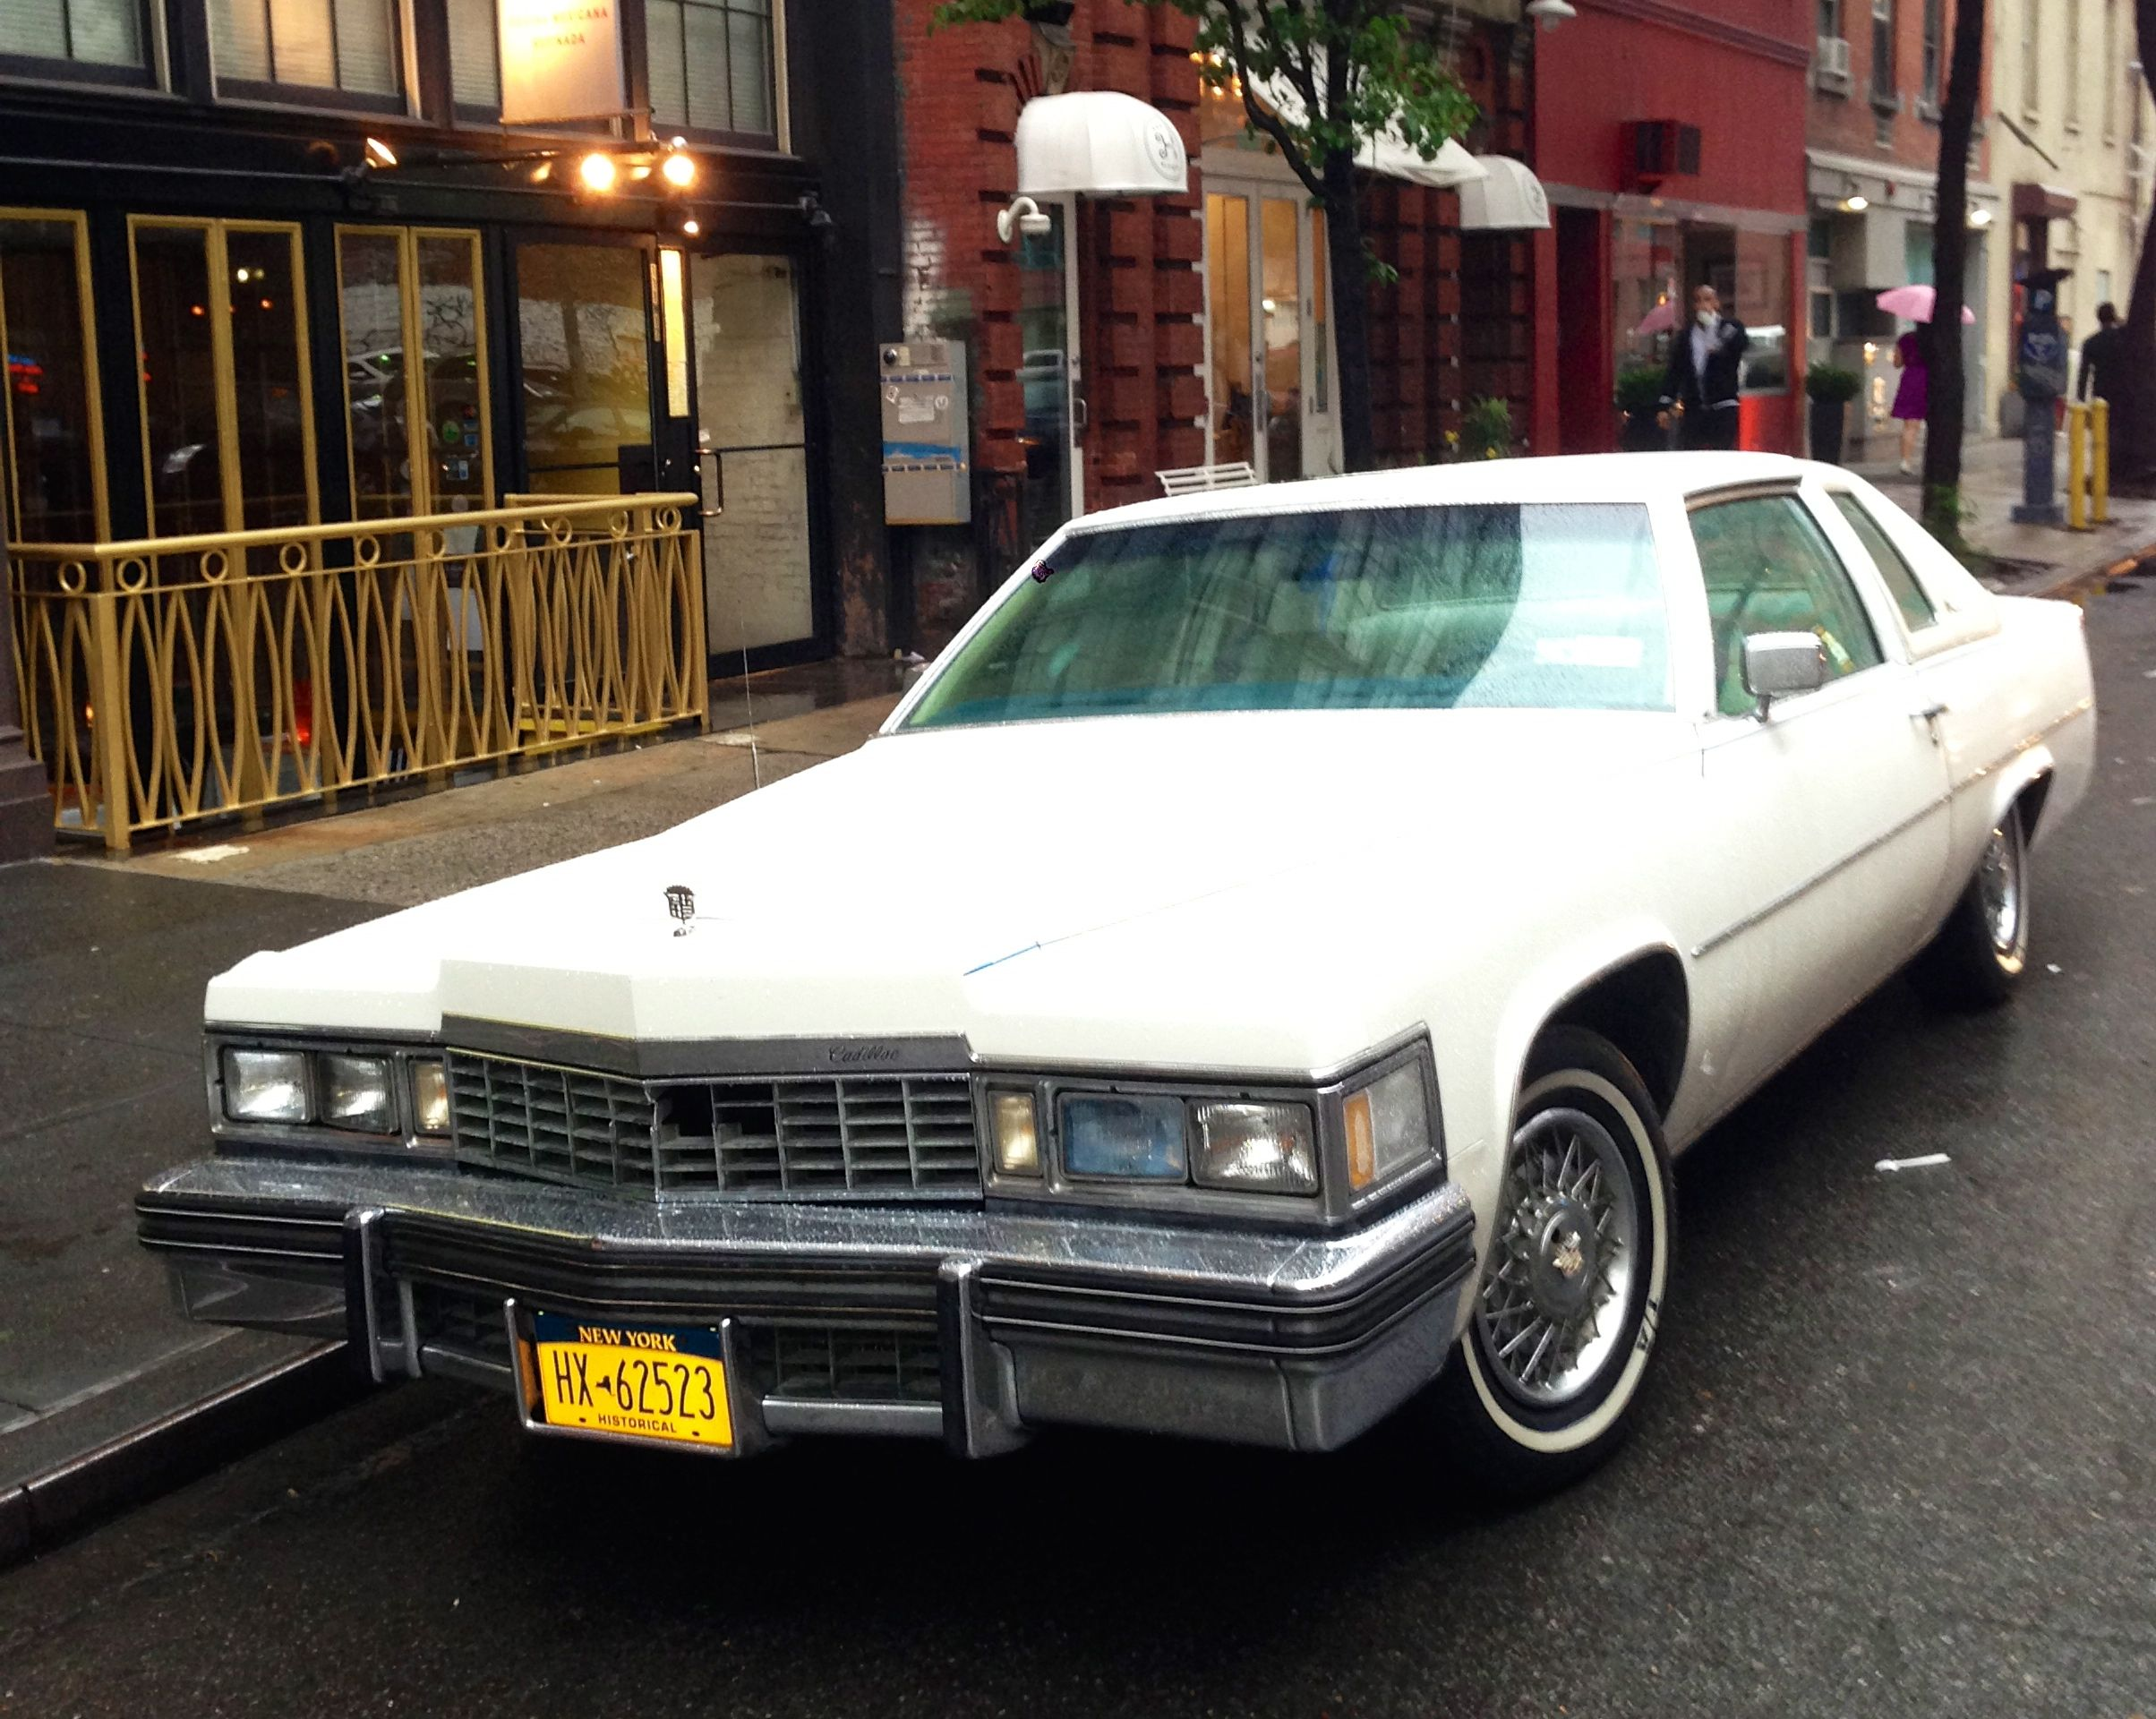 1977 Cadillac Coupe de Ville | Found on the Streets of New York City